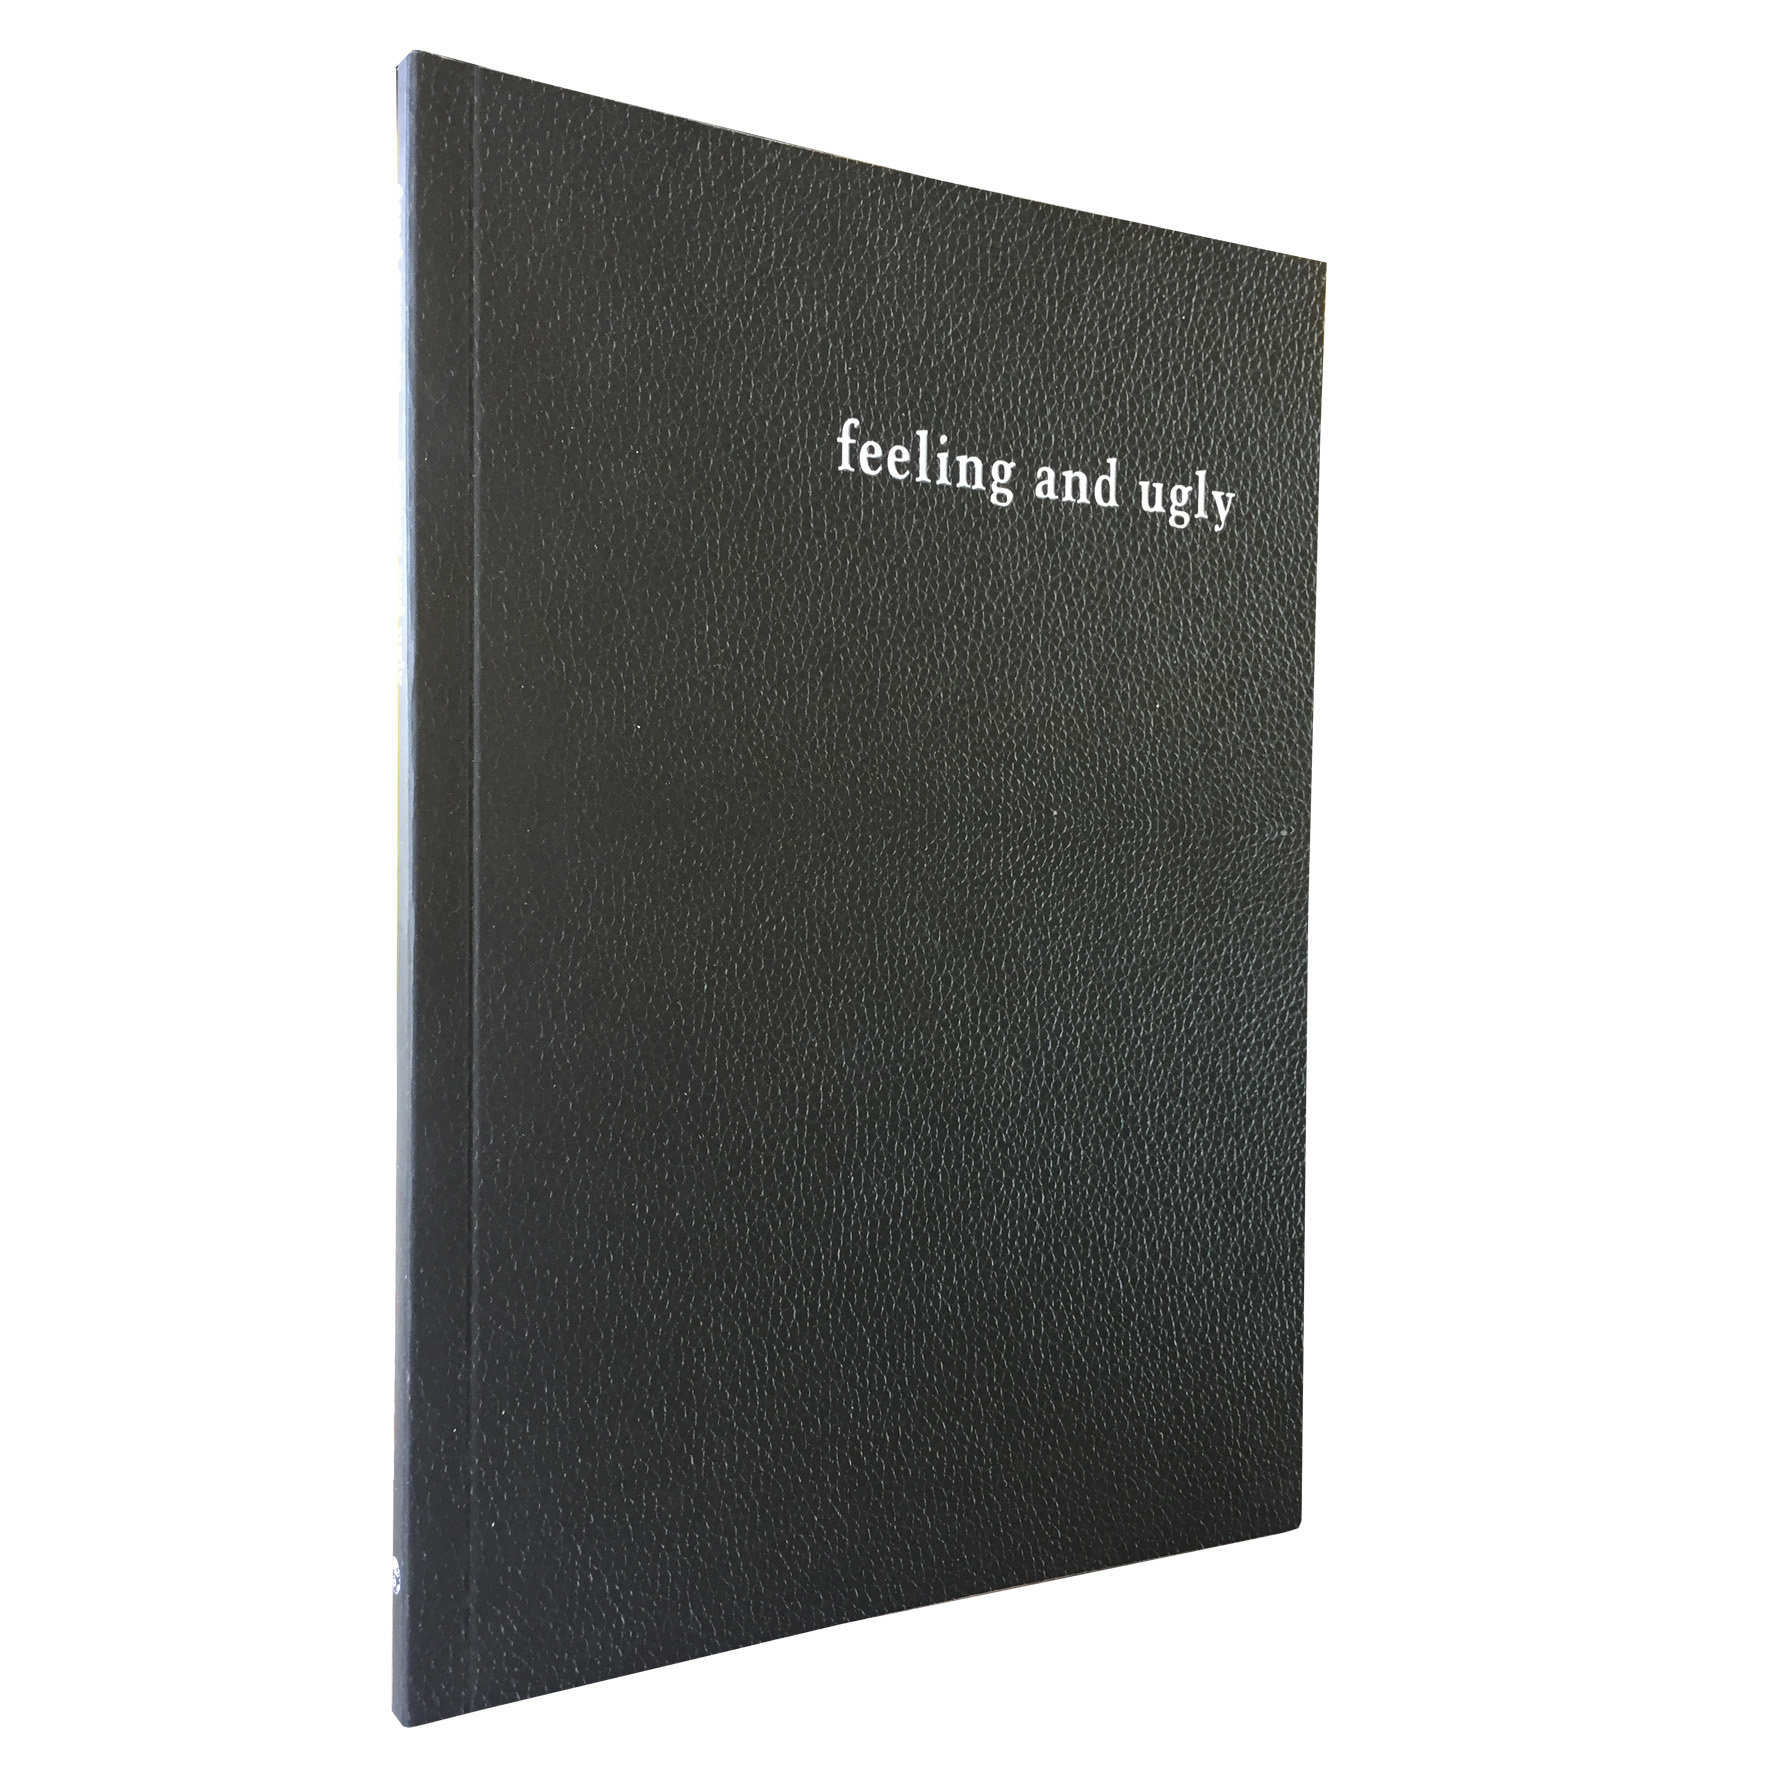 Feeling and Ugly by Danai Mupotsa (Impepho Press 2018) IP04